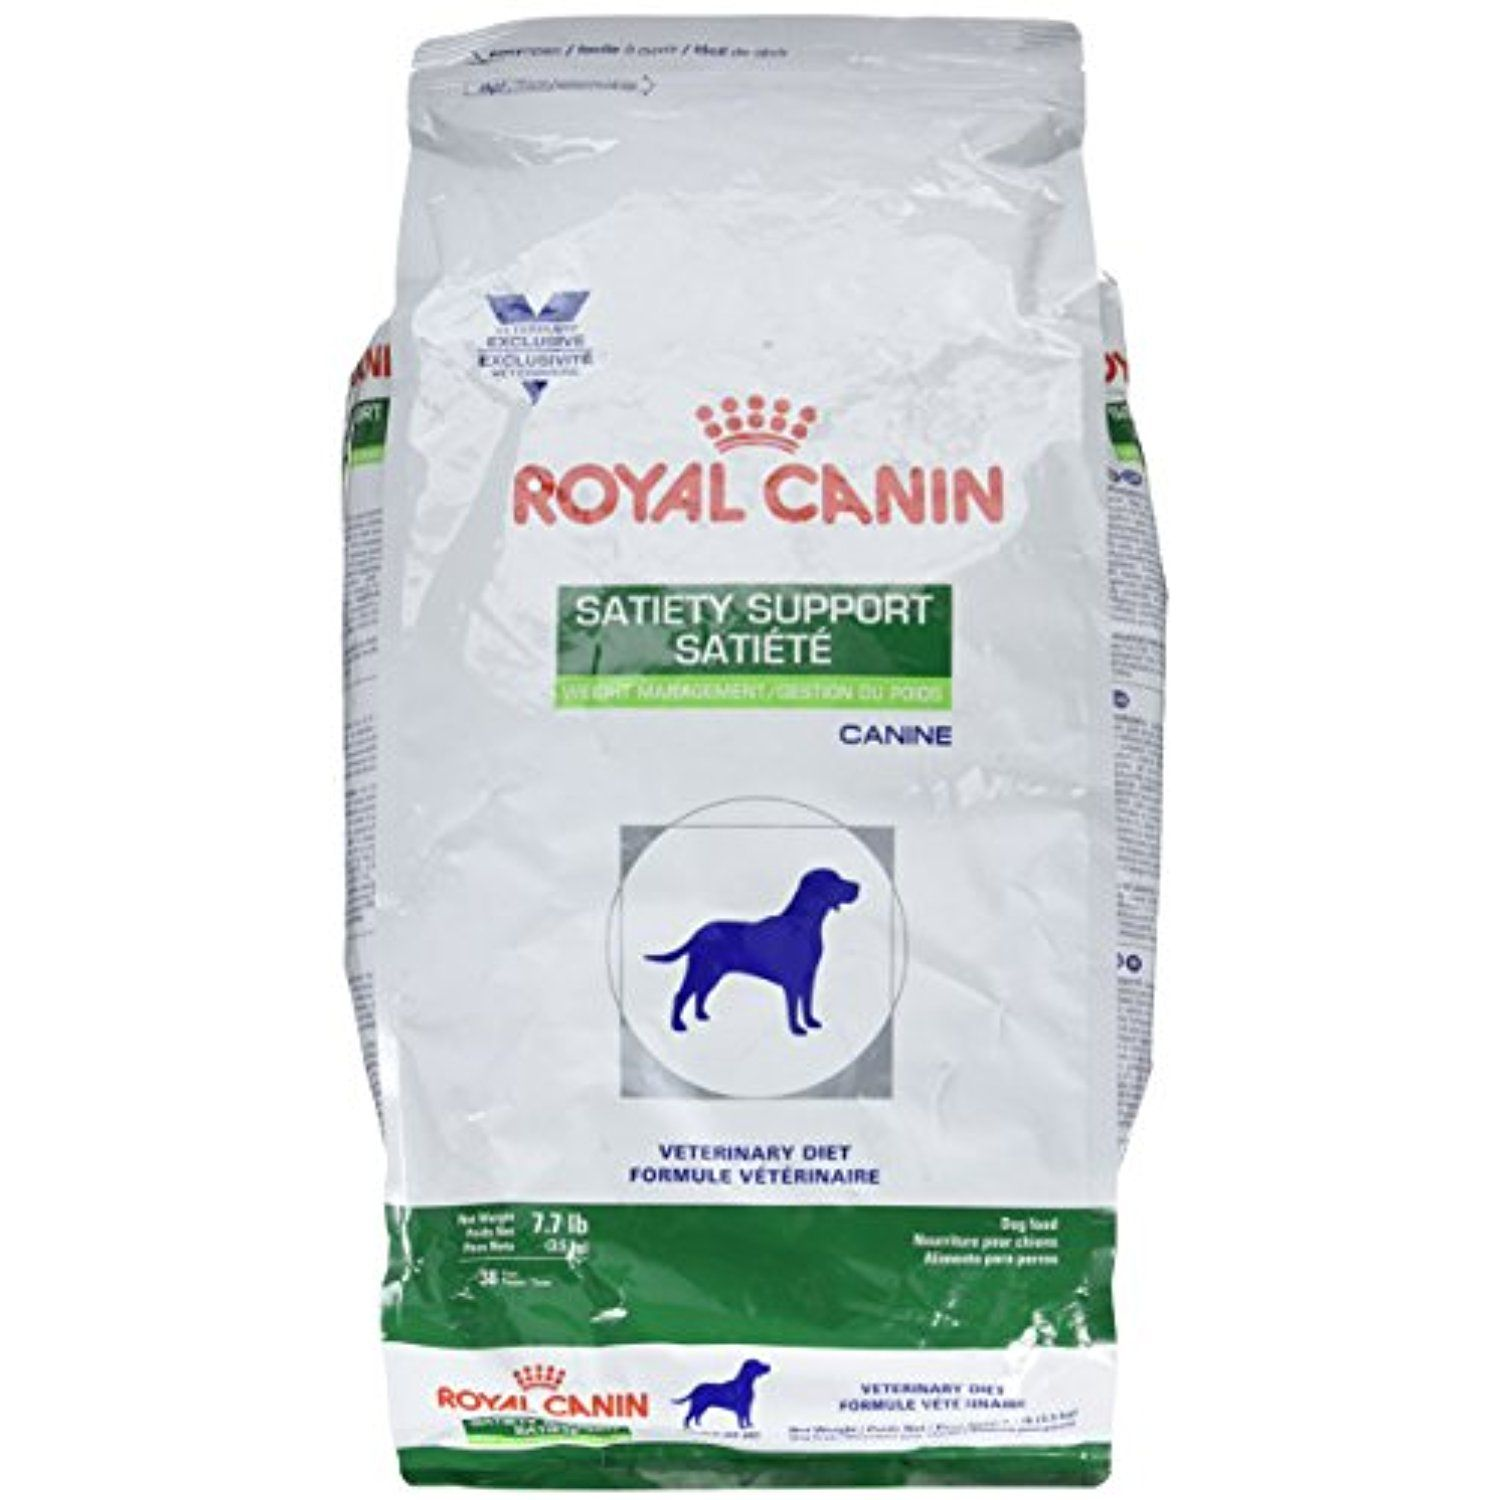 Royal Canin Canine Satiety Support Dry 7 7 Lb You Can Click